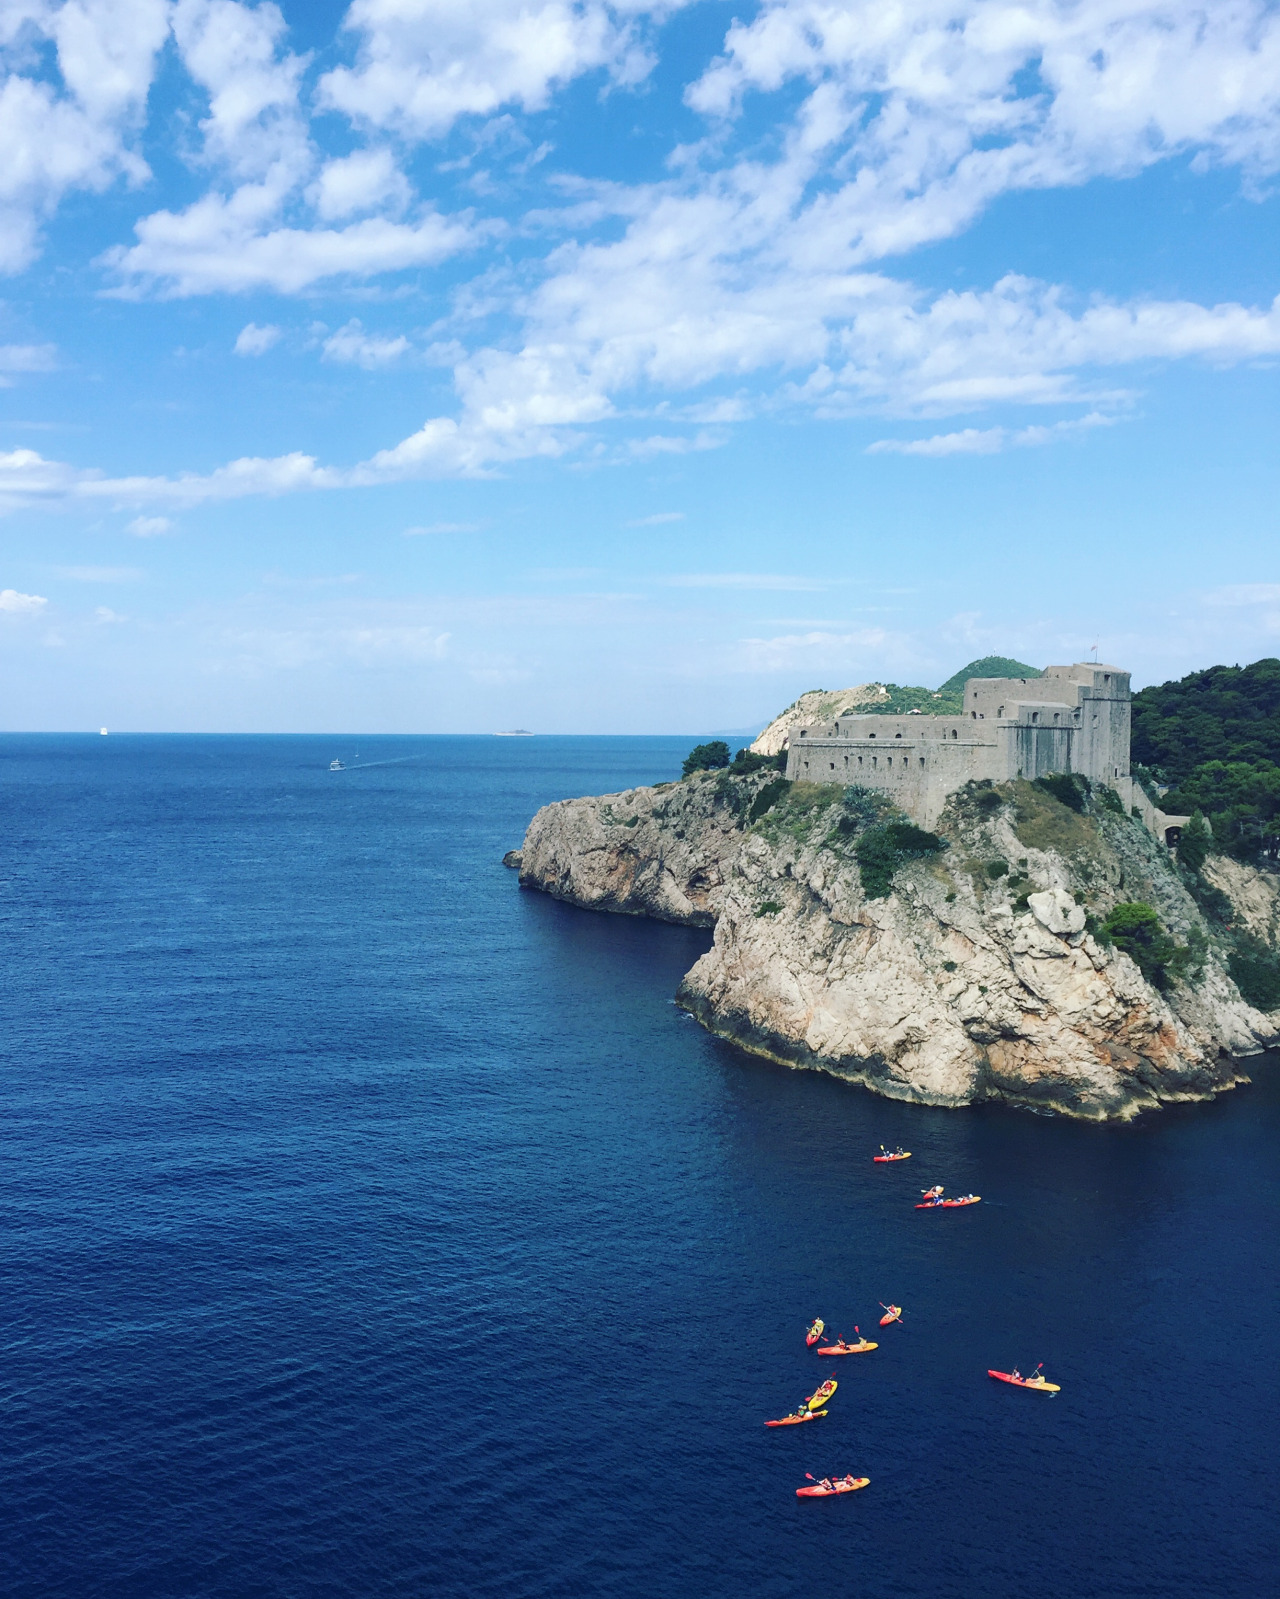 """""""A view from the wall of the old city in Dubrovnik, Croatia."""" - Emily Kropp, Director of Social Media"""